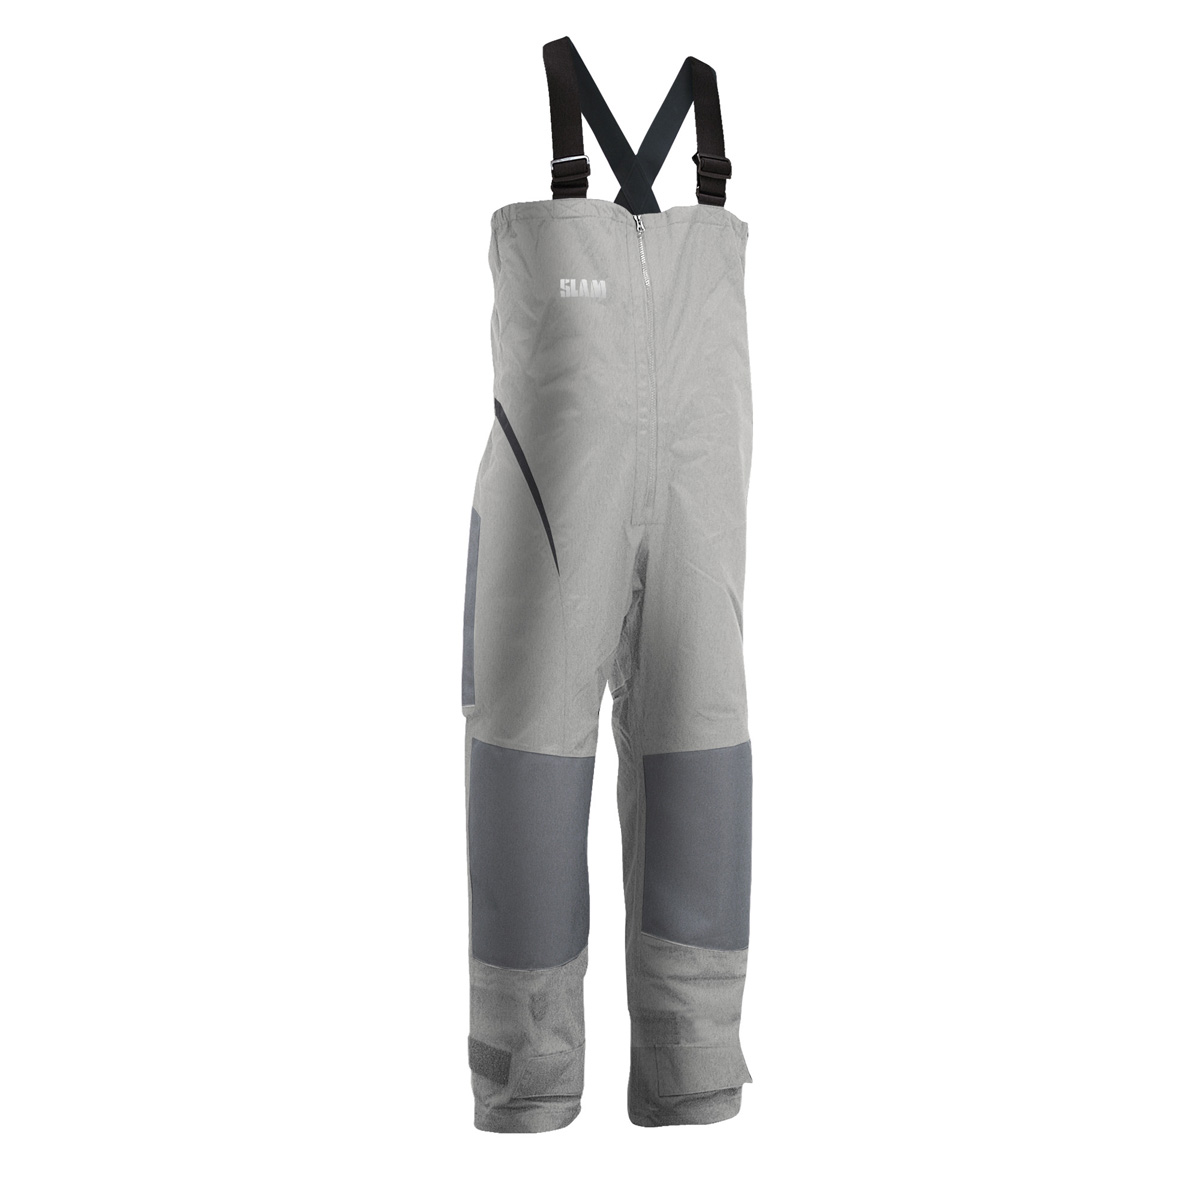 Force 1 Bibs - grey -xxl-3xl